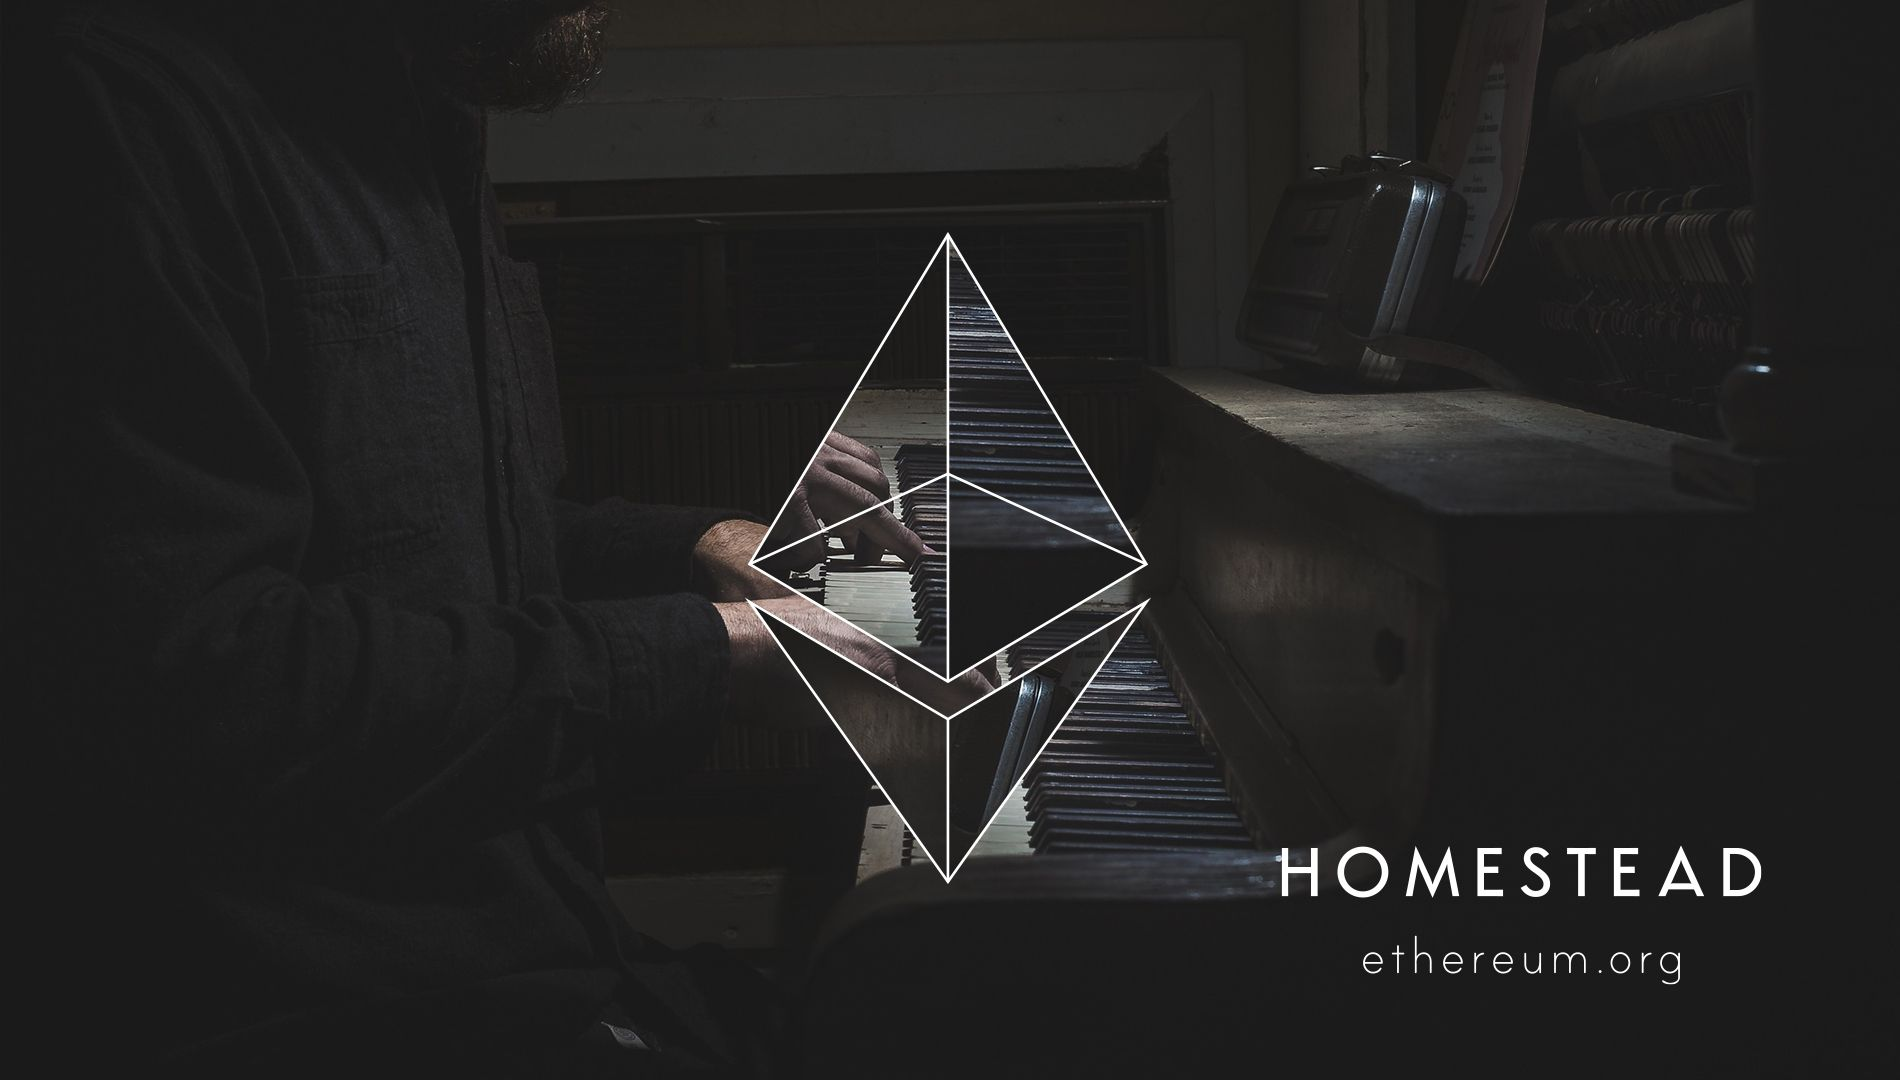 Pin by Ethereum on Ethereum Wallpapers in 2019 Bitcoin 1900x1080